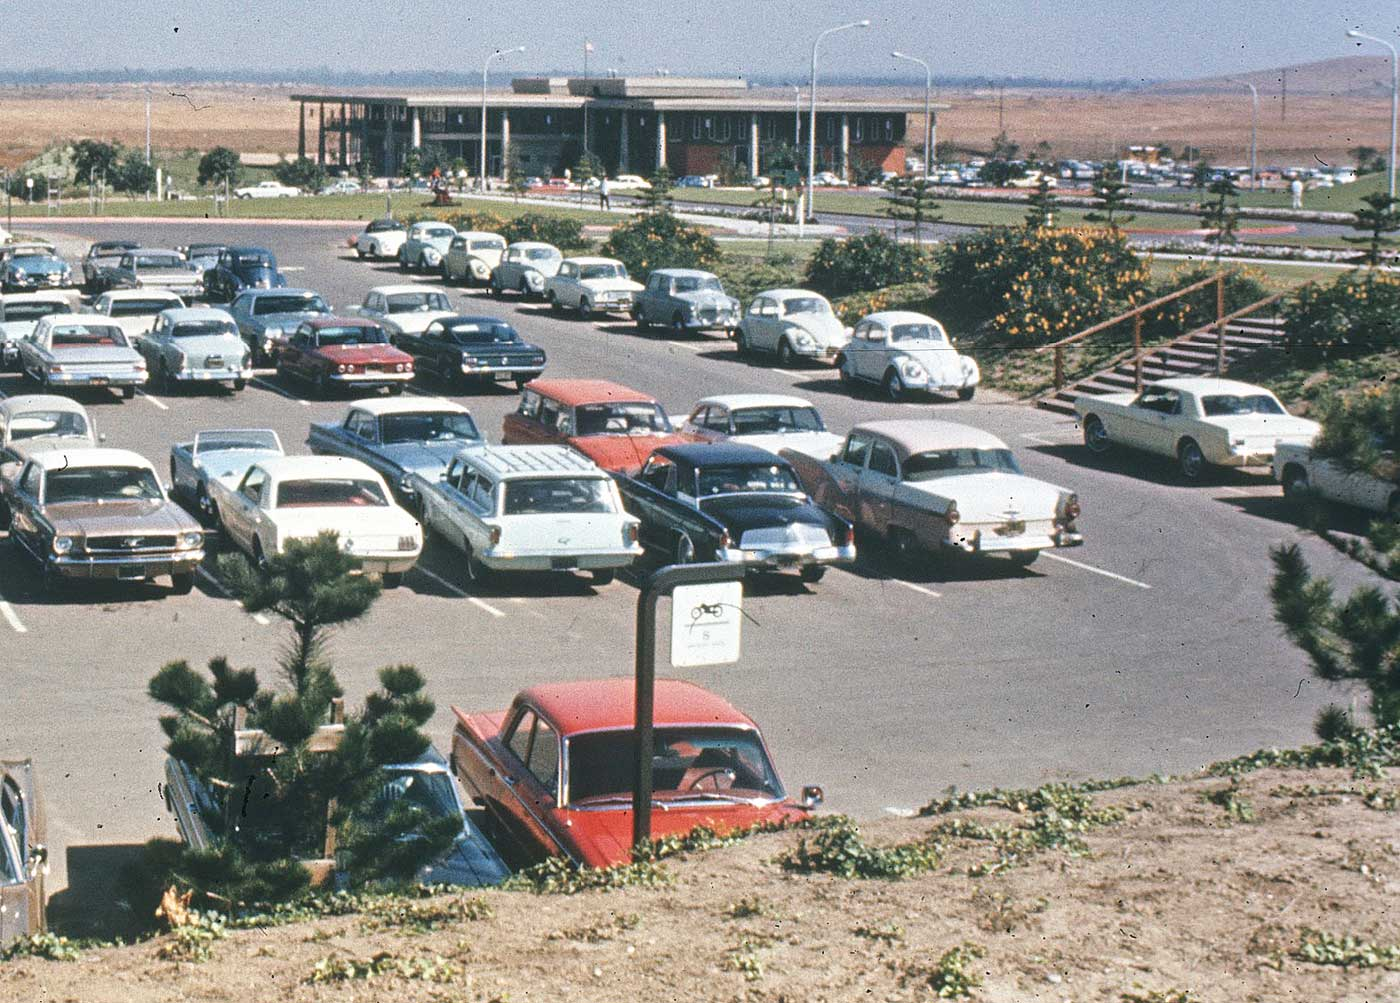 Irvine Auto Center >> Parking Lot Series: University of California at Irvine | The Old Motor